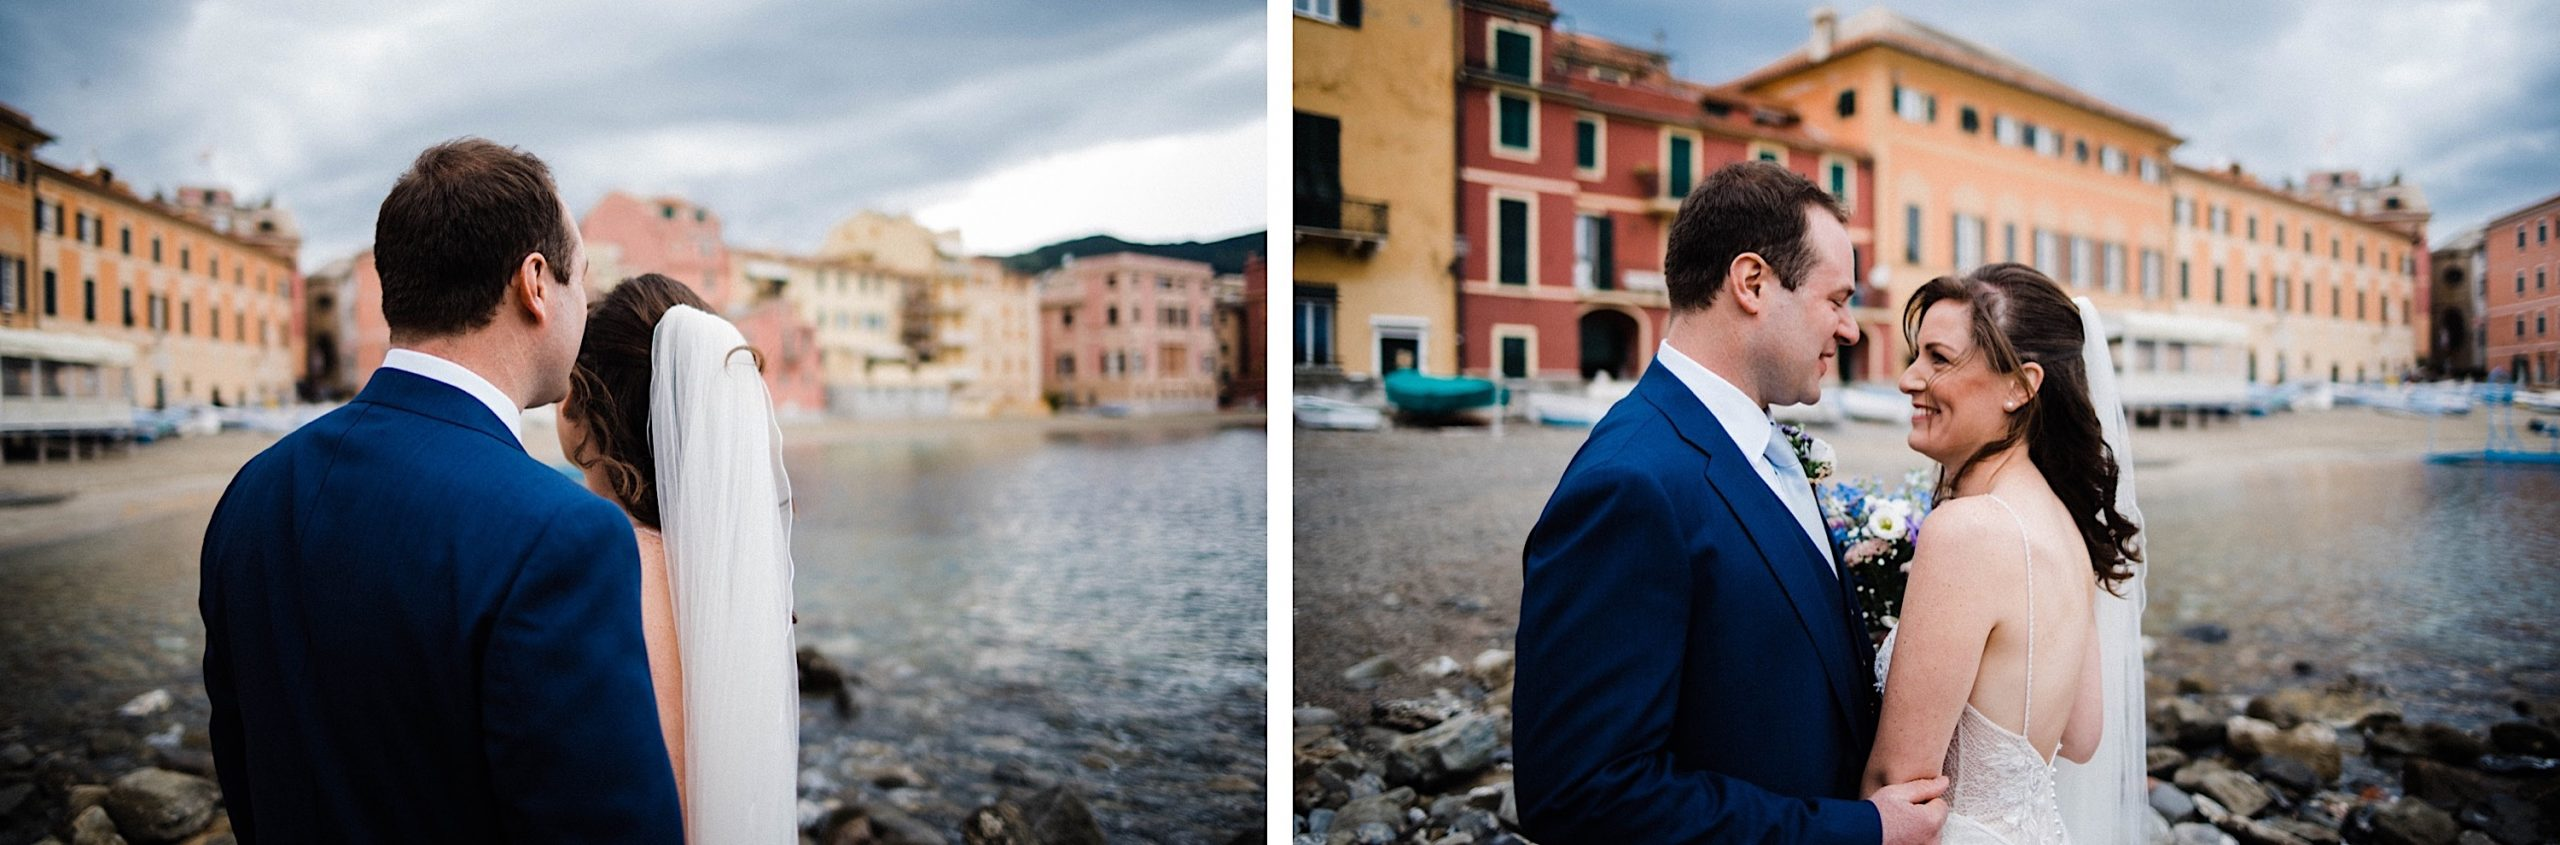 Two natural wedding portraits of a bride & groom standing together in front of the buildings lining the Bay of Silence.